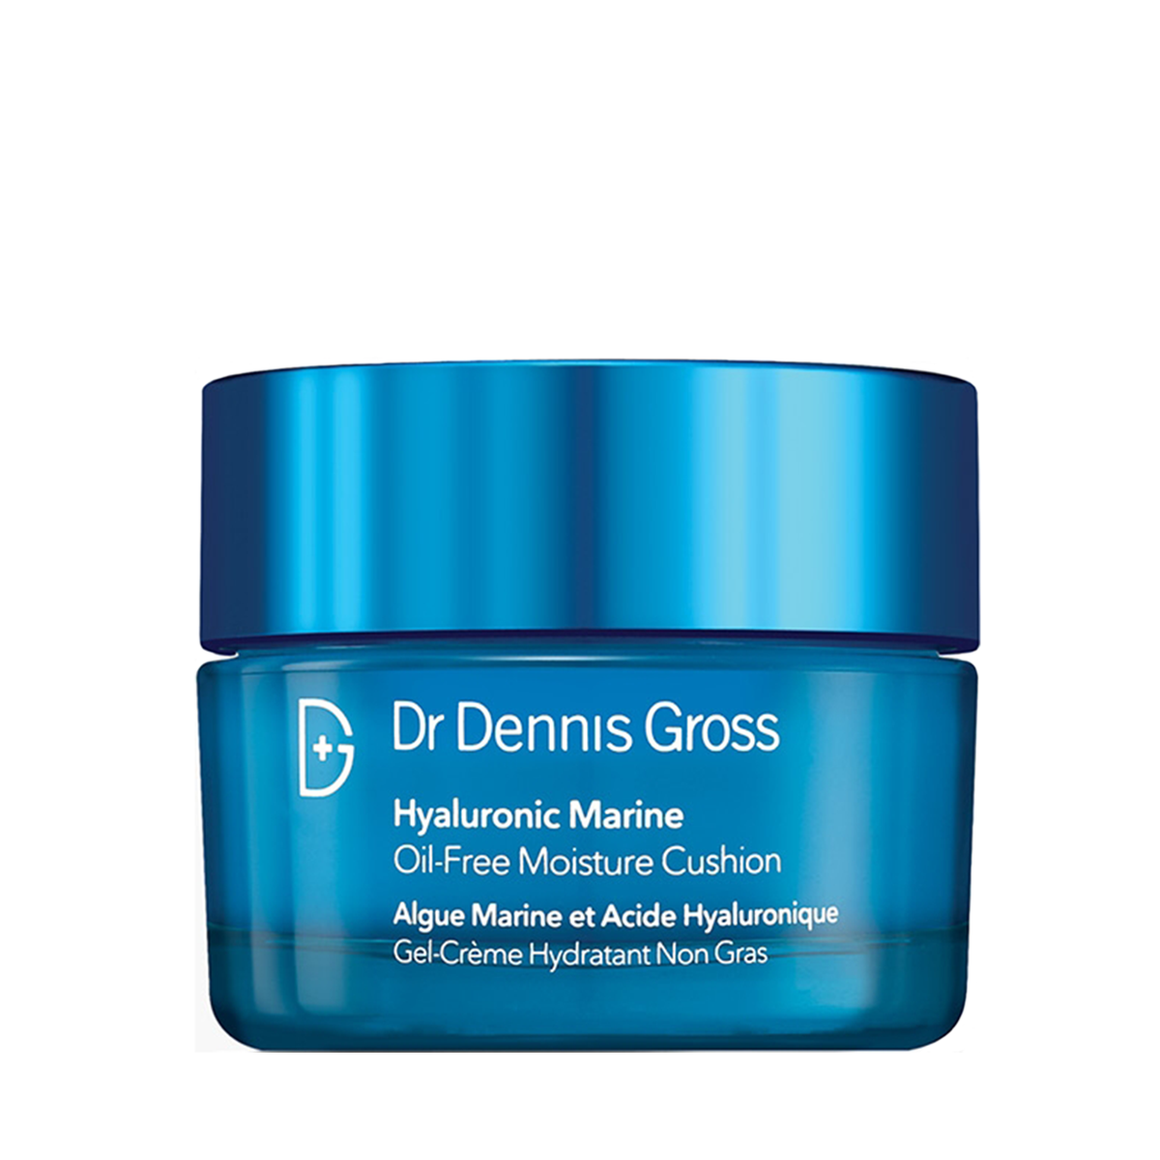 Hyaluronic Marine™ Oil-Free Moisture Cushion